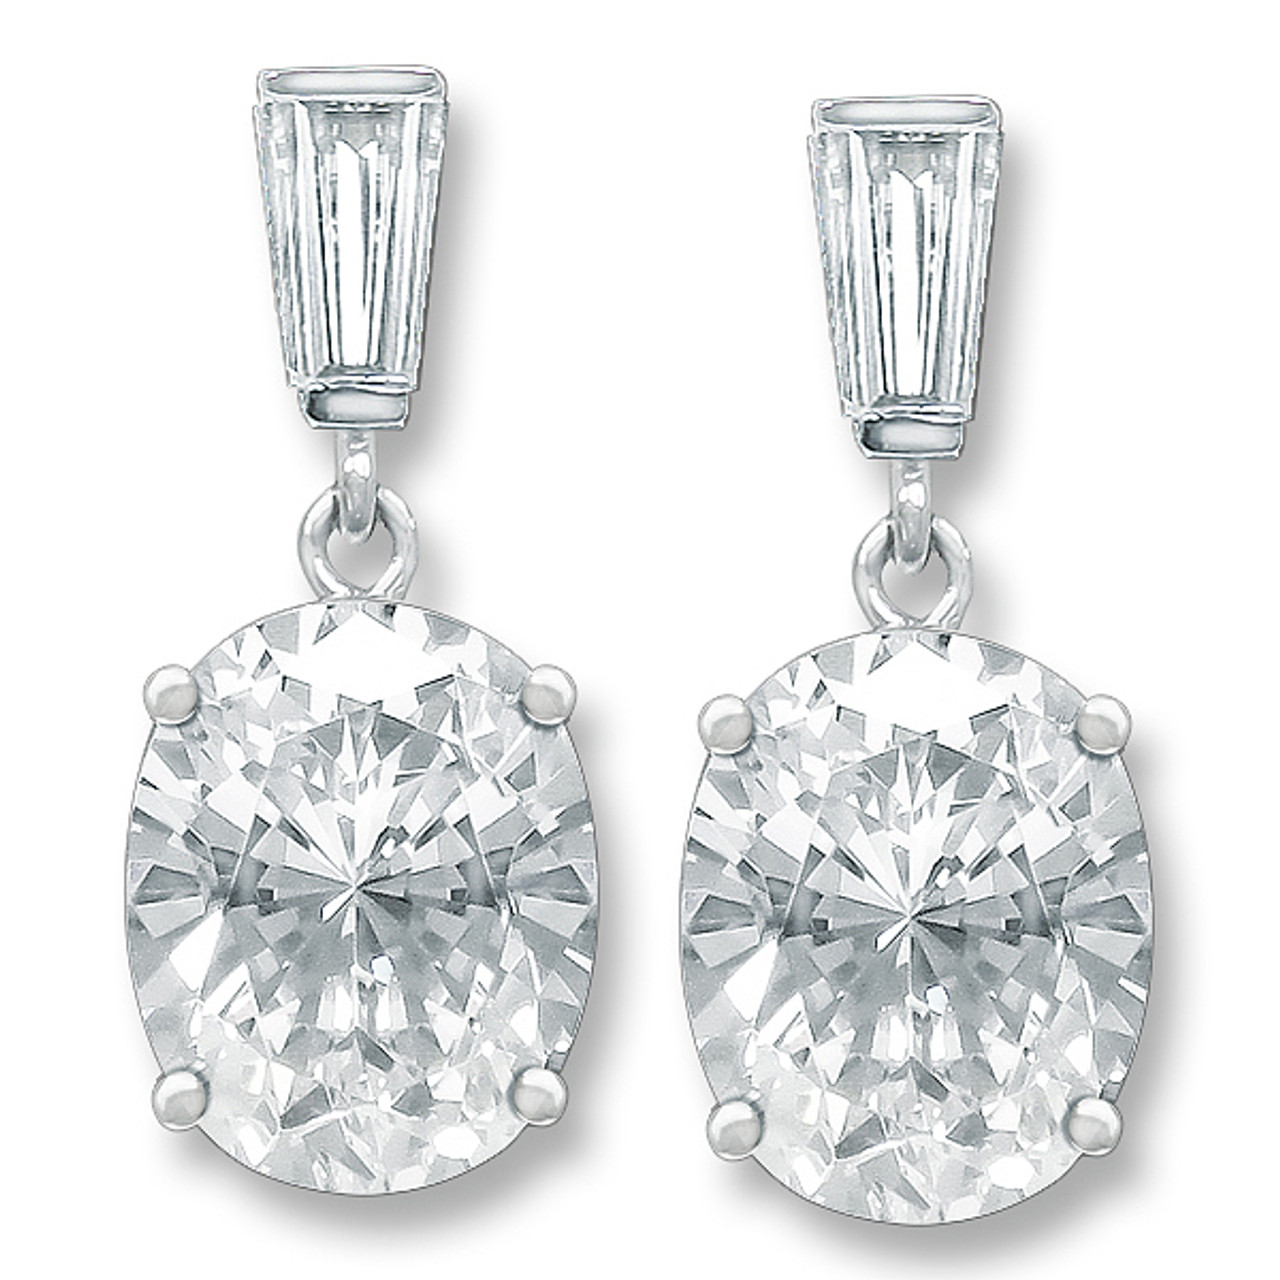 fantasia look by pave marcus stud quick neiman mk cubic deserio earrings zirconia th